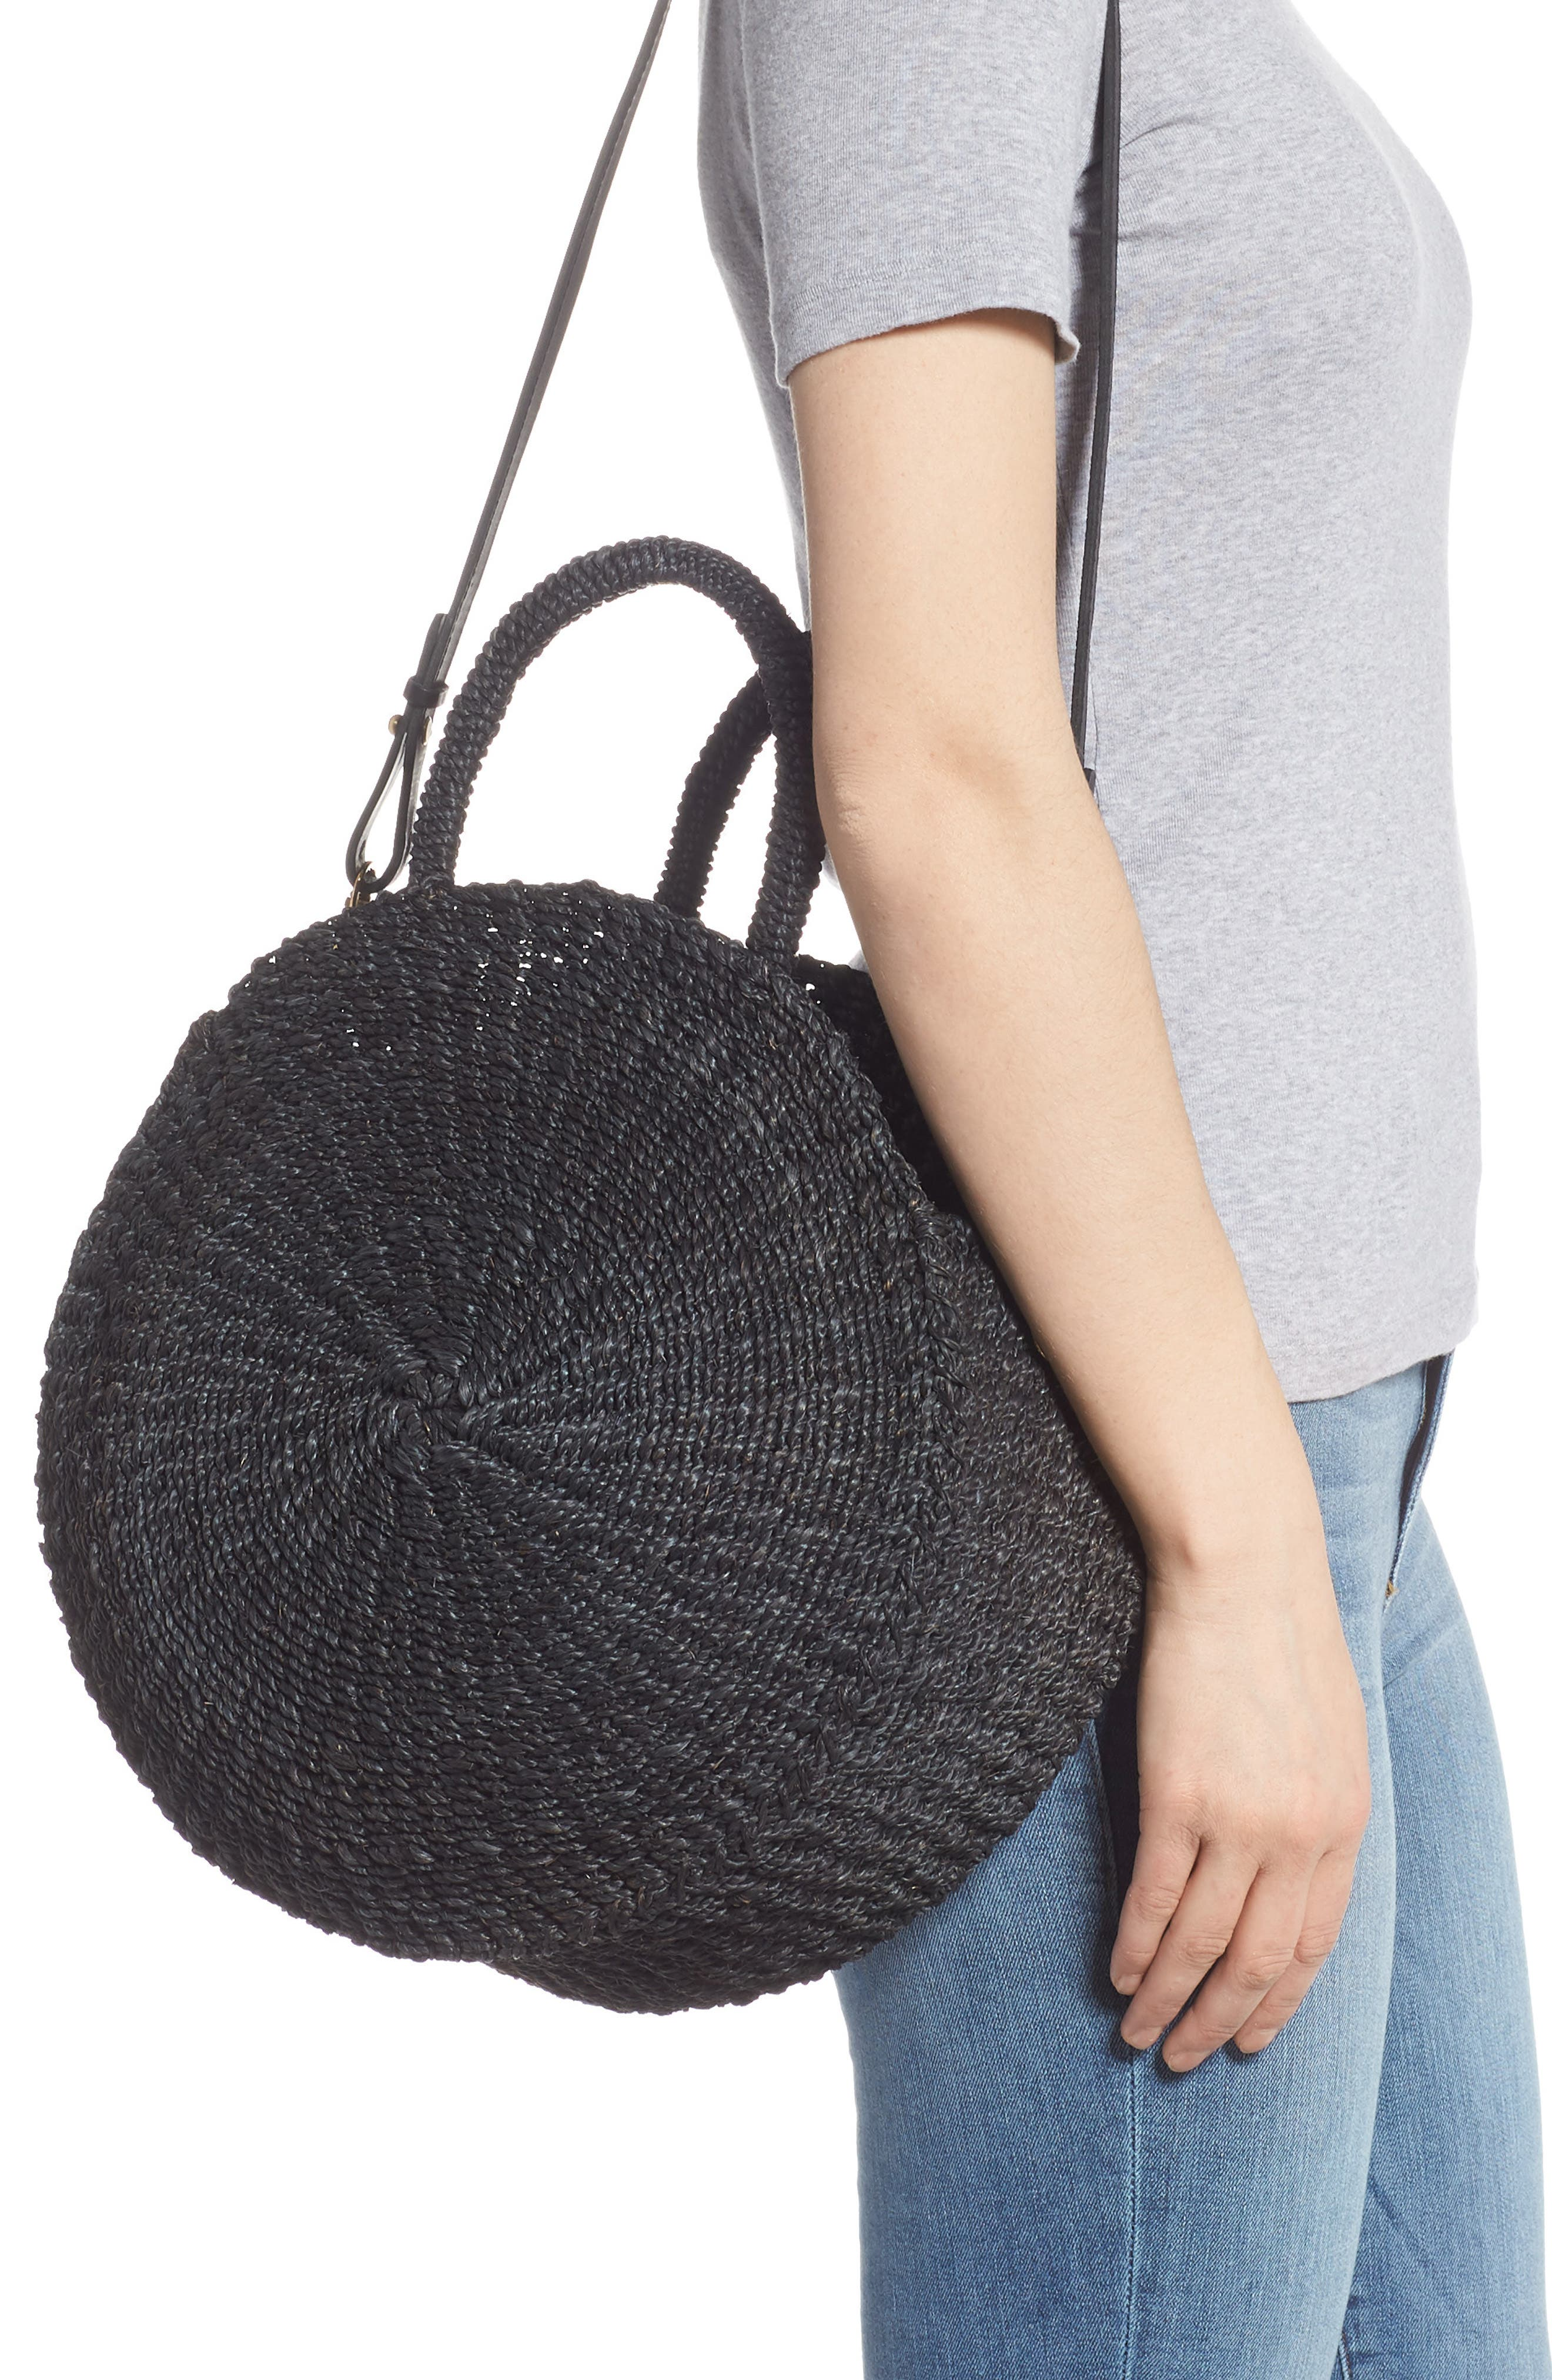 Alice Woven Sisal Straw Bag,                             Alternate thumbnail 2, color,                             BLACK